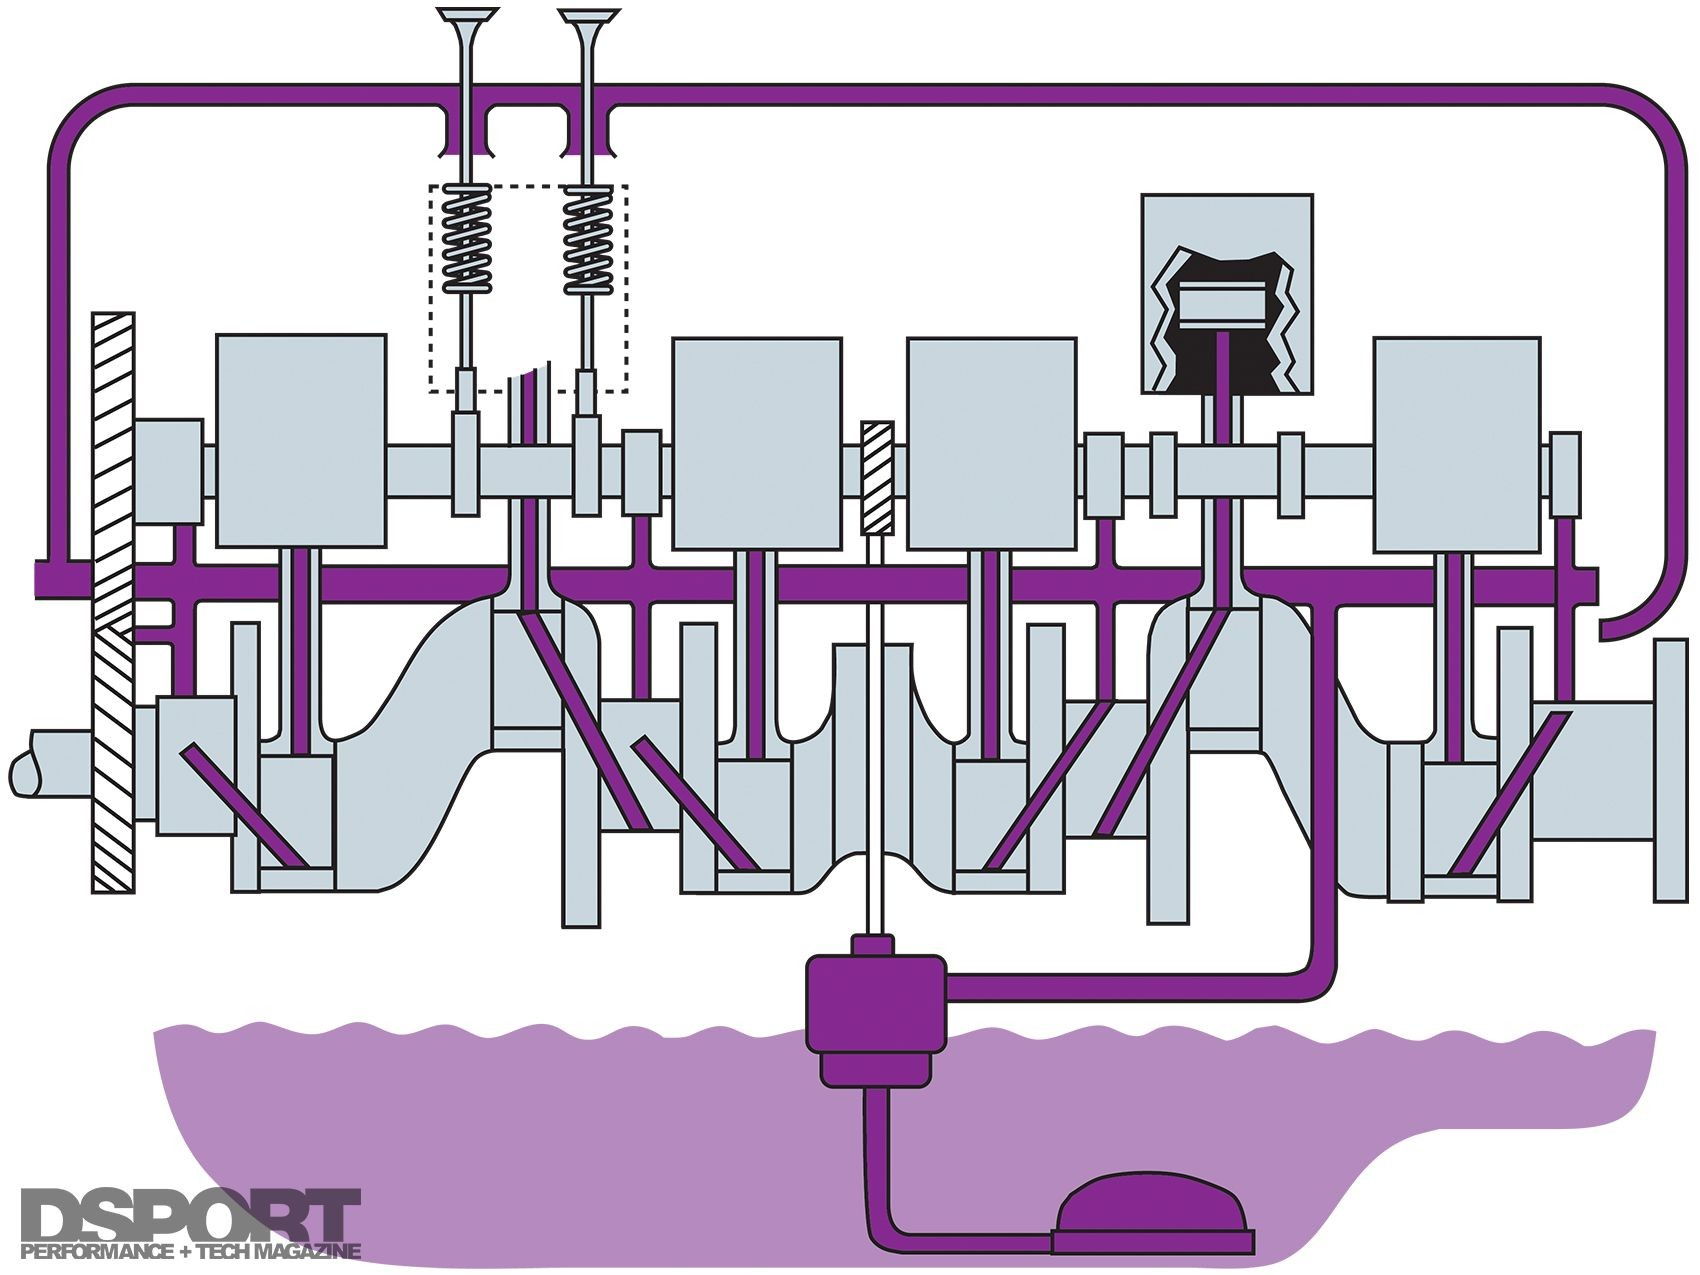 Lube Oil Diagram №181499000 What is Engine Lubrication System Of Lube Oil Diagram №181499000